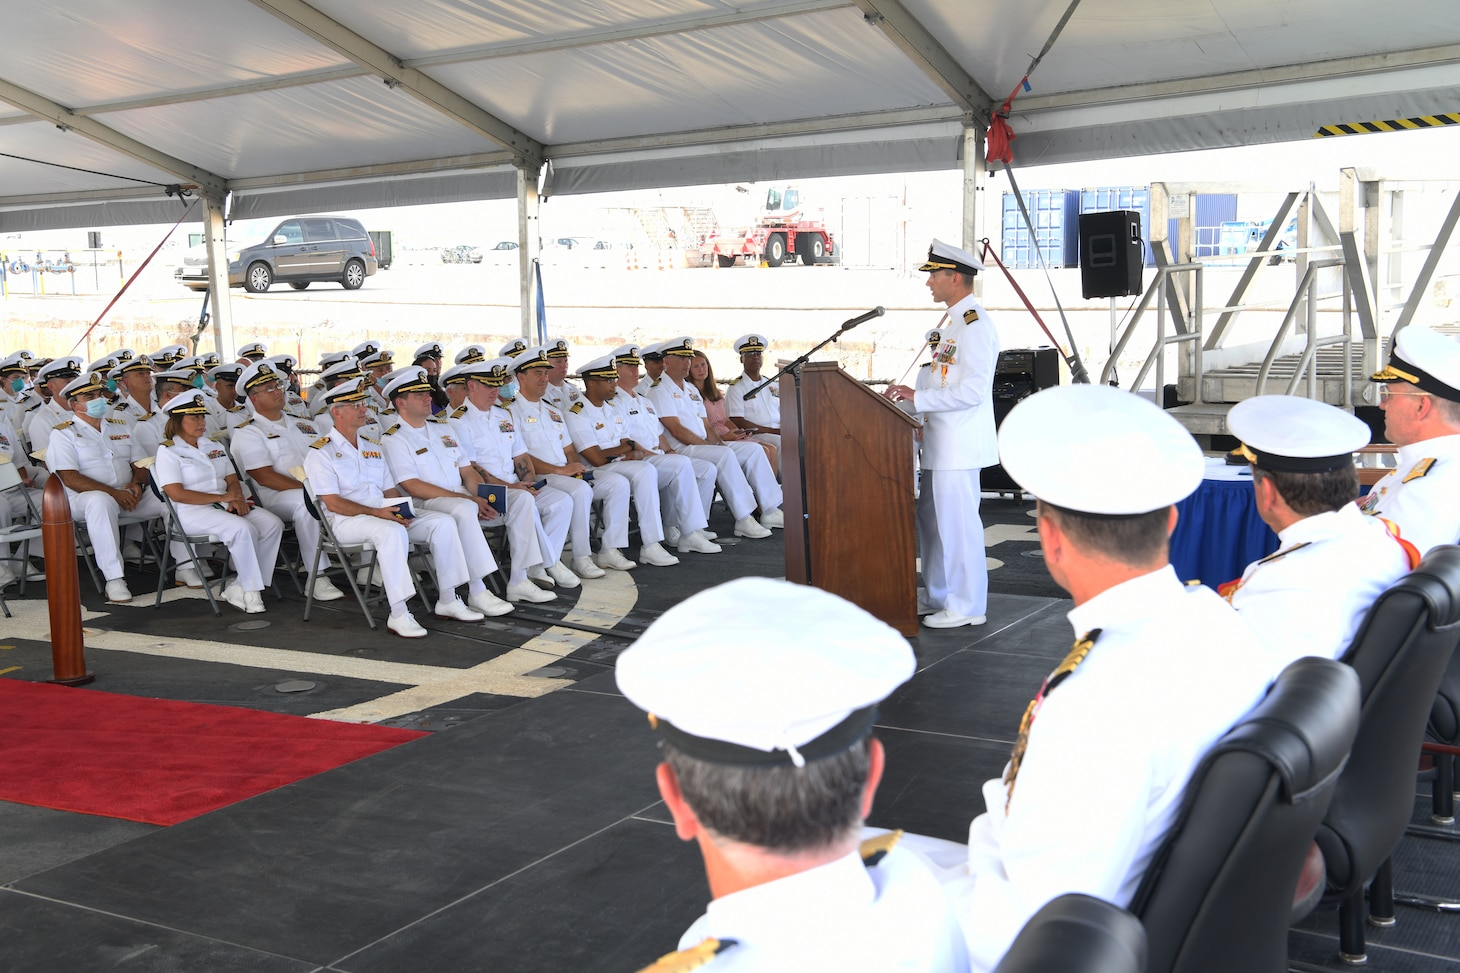 Capt. Joseph Gagliano speaks at the Commander, Task Force (CTF) 65 change of command ceremony at Naval Station Rota, Aug. 10, 2019. Capt. Joseph Gagliano was relieved by Capt. Kyle Gantt as commodore during a waterfront ceremony presided over by Vice Adm. Gene Black, commander, U.S. Sixth Fleet.  CTF 65. CTF 65 and DESRON 60, headquartered in Rota, Spain, overseas the forward-deployed forces of U.S. Sixth Fleet's area of operation in support of regional allies and partners as well as U.S. national security interests in Europe and Africa.